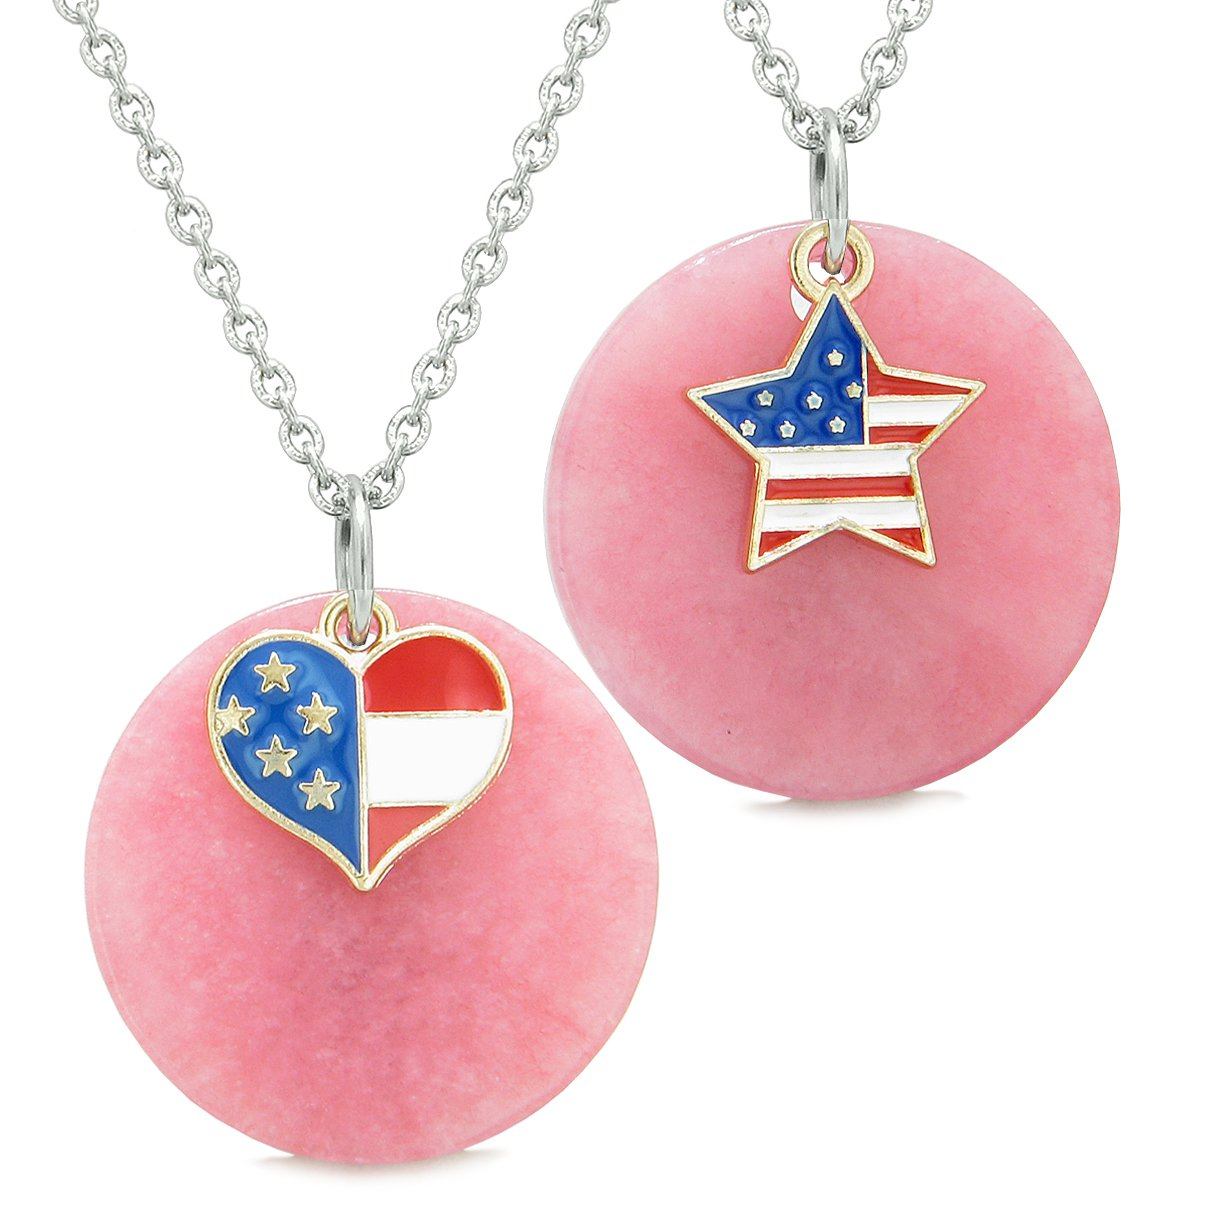 Proud American Flag Super Heart and Star Love Couples or BFF Set Pink Quartz Amulet Necklaces